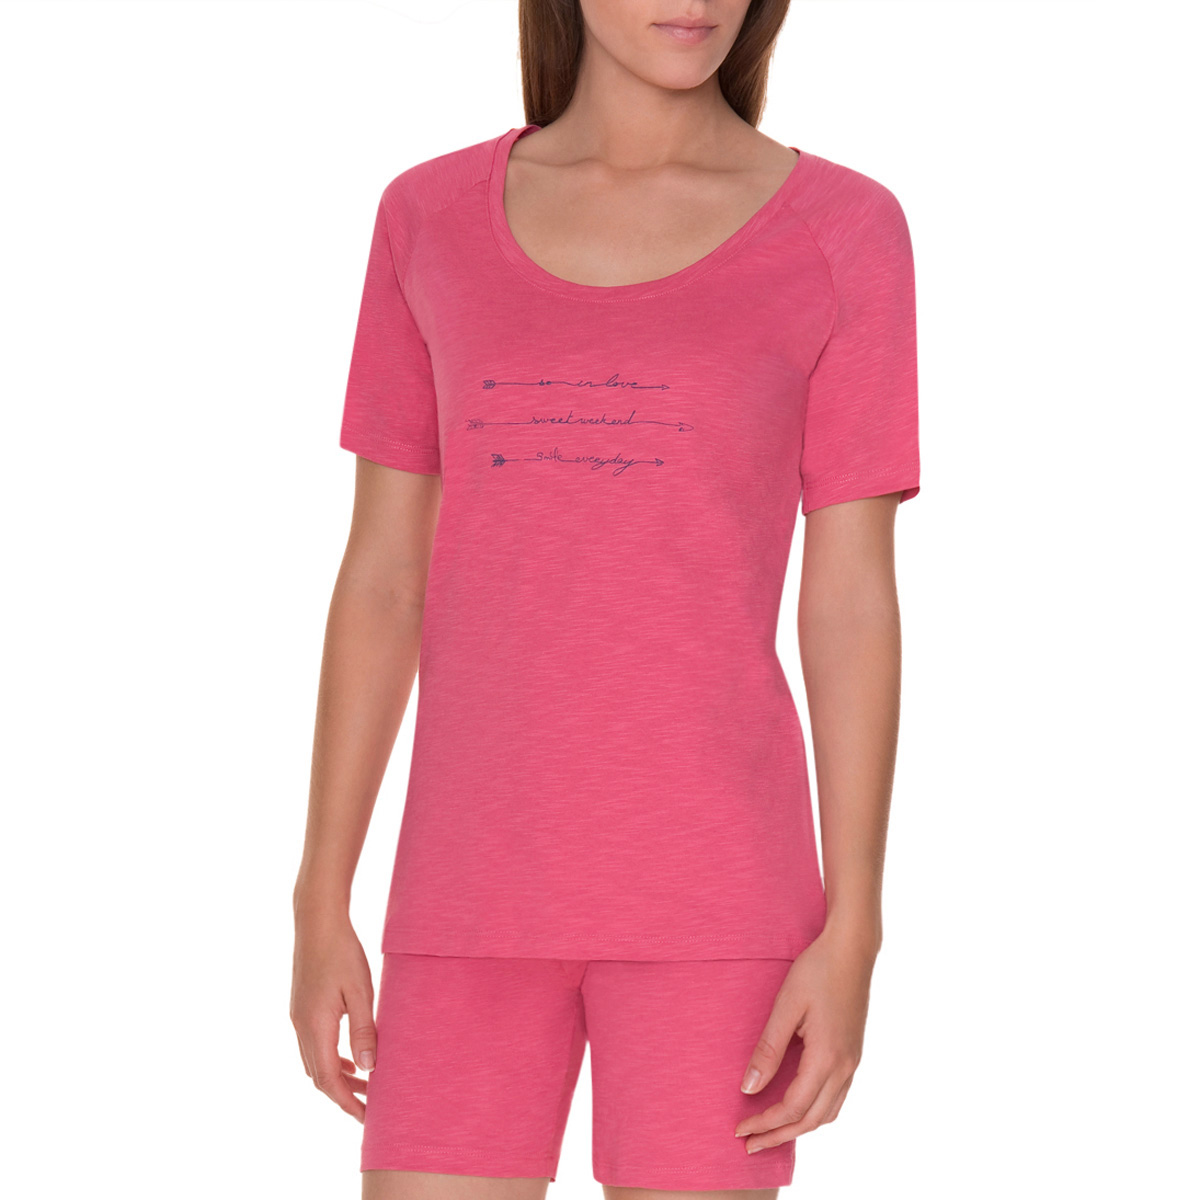 T-shirt manches courtes rose flamme pyjama Femme